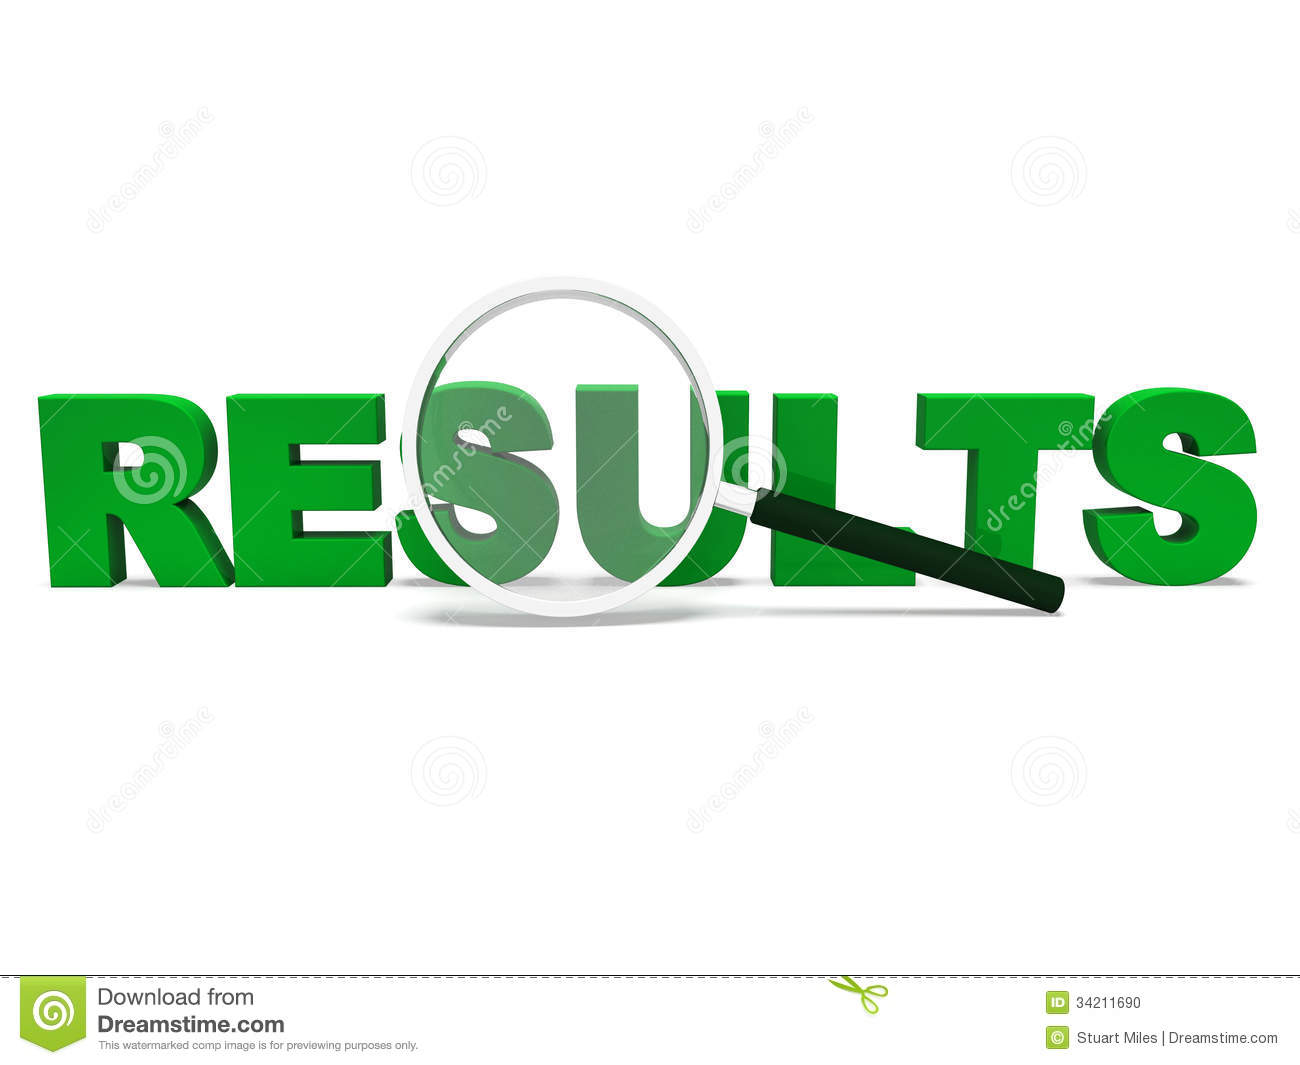 achievement results Self imposed discipline is not enough if you dont want the end goal passionately enough the achievement of results is easy only when the goal is right for you.